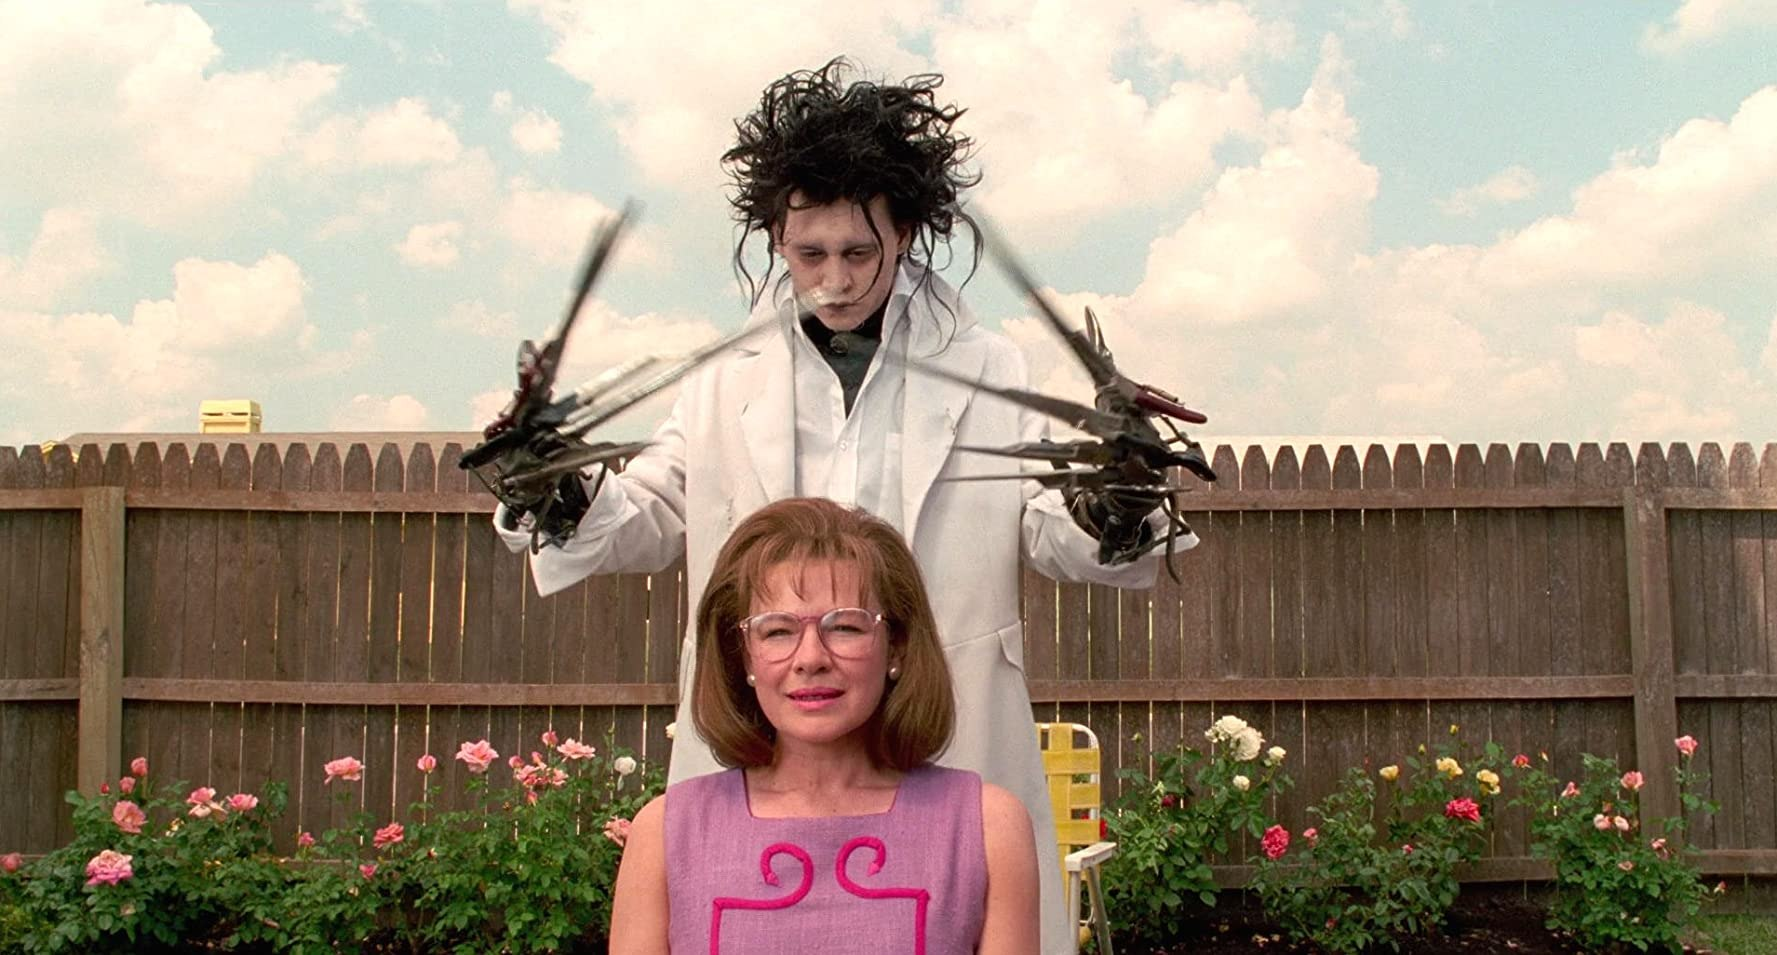 edwardscissorhands02